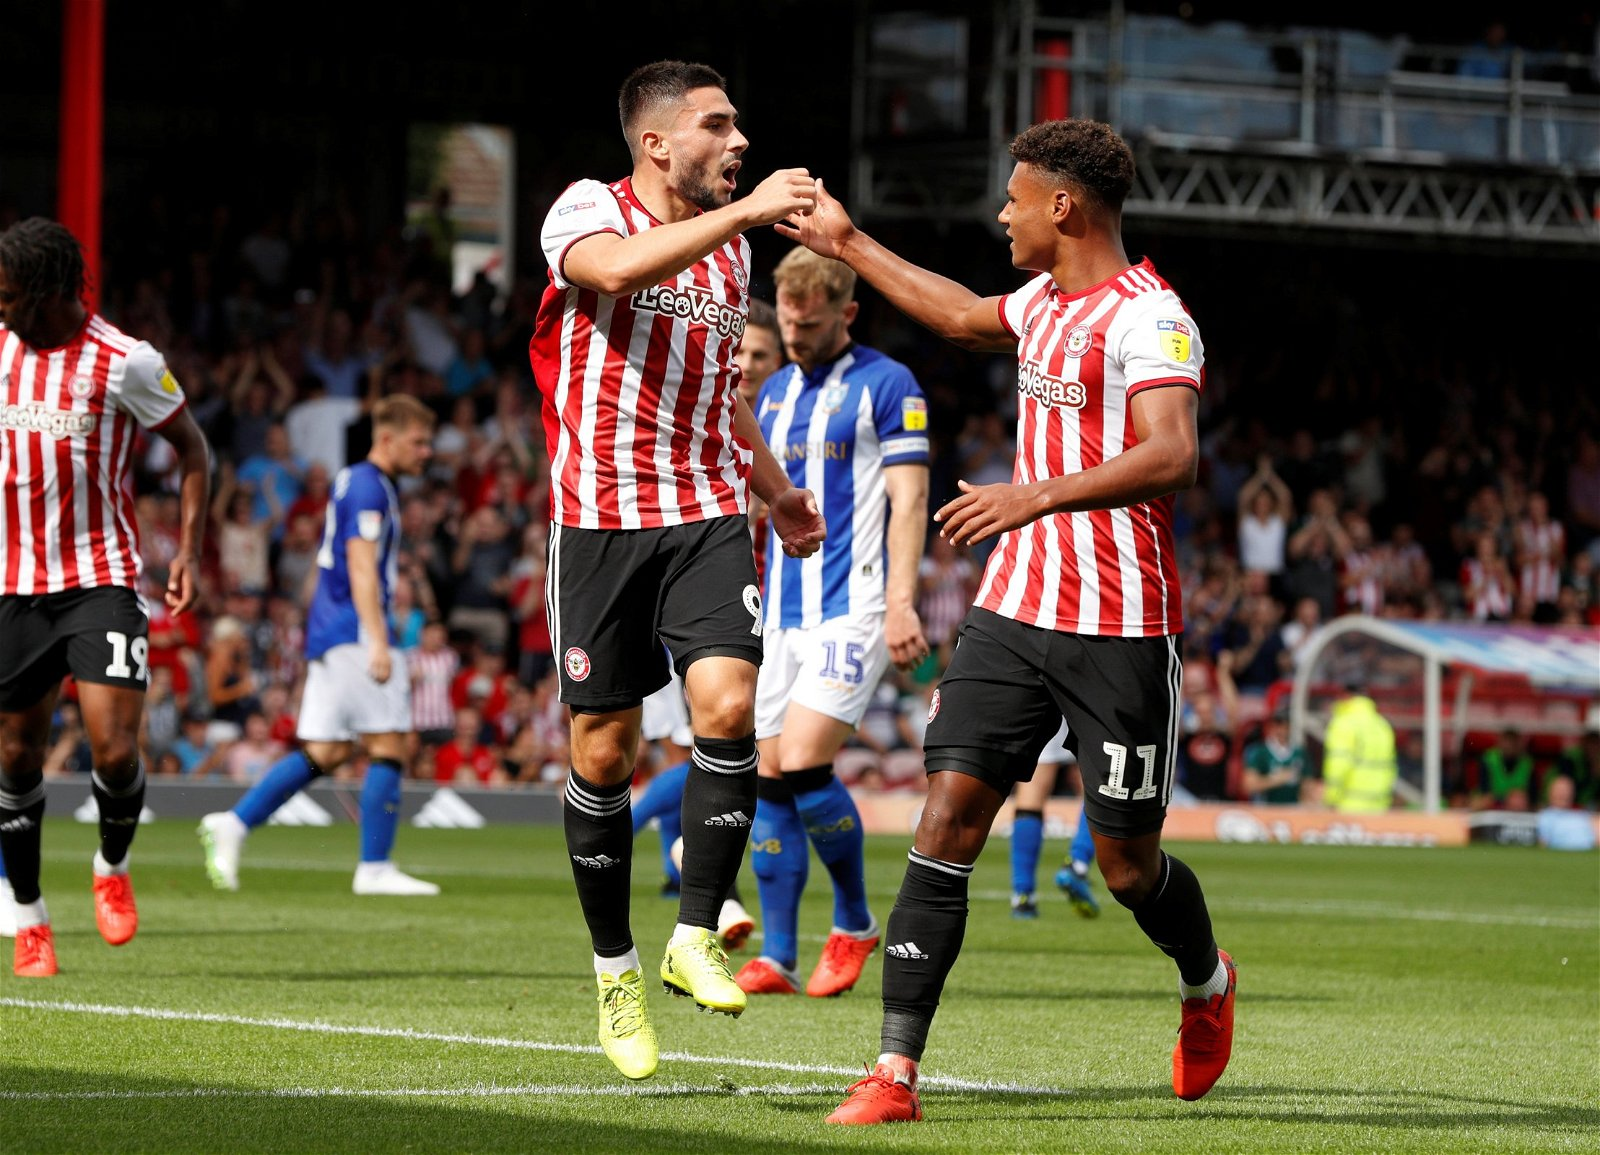 Neal Maupay Brentford - Aston Villa could go straight back down if they fail to address three problem areas - opinion